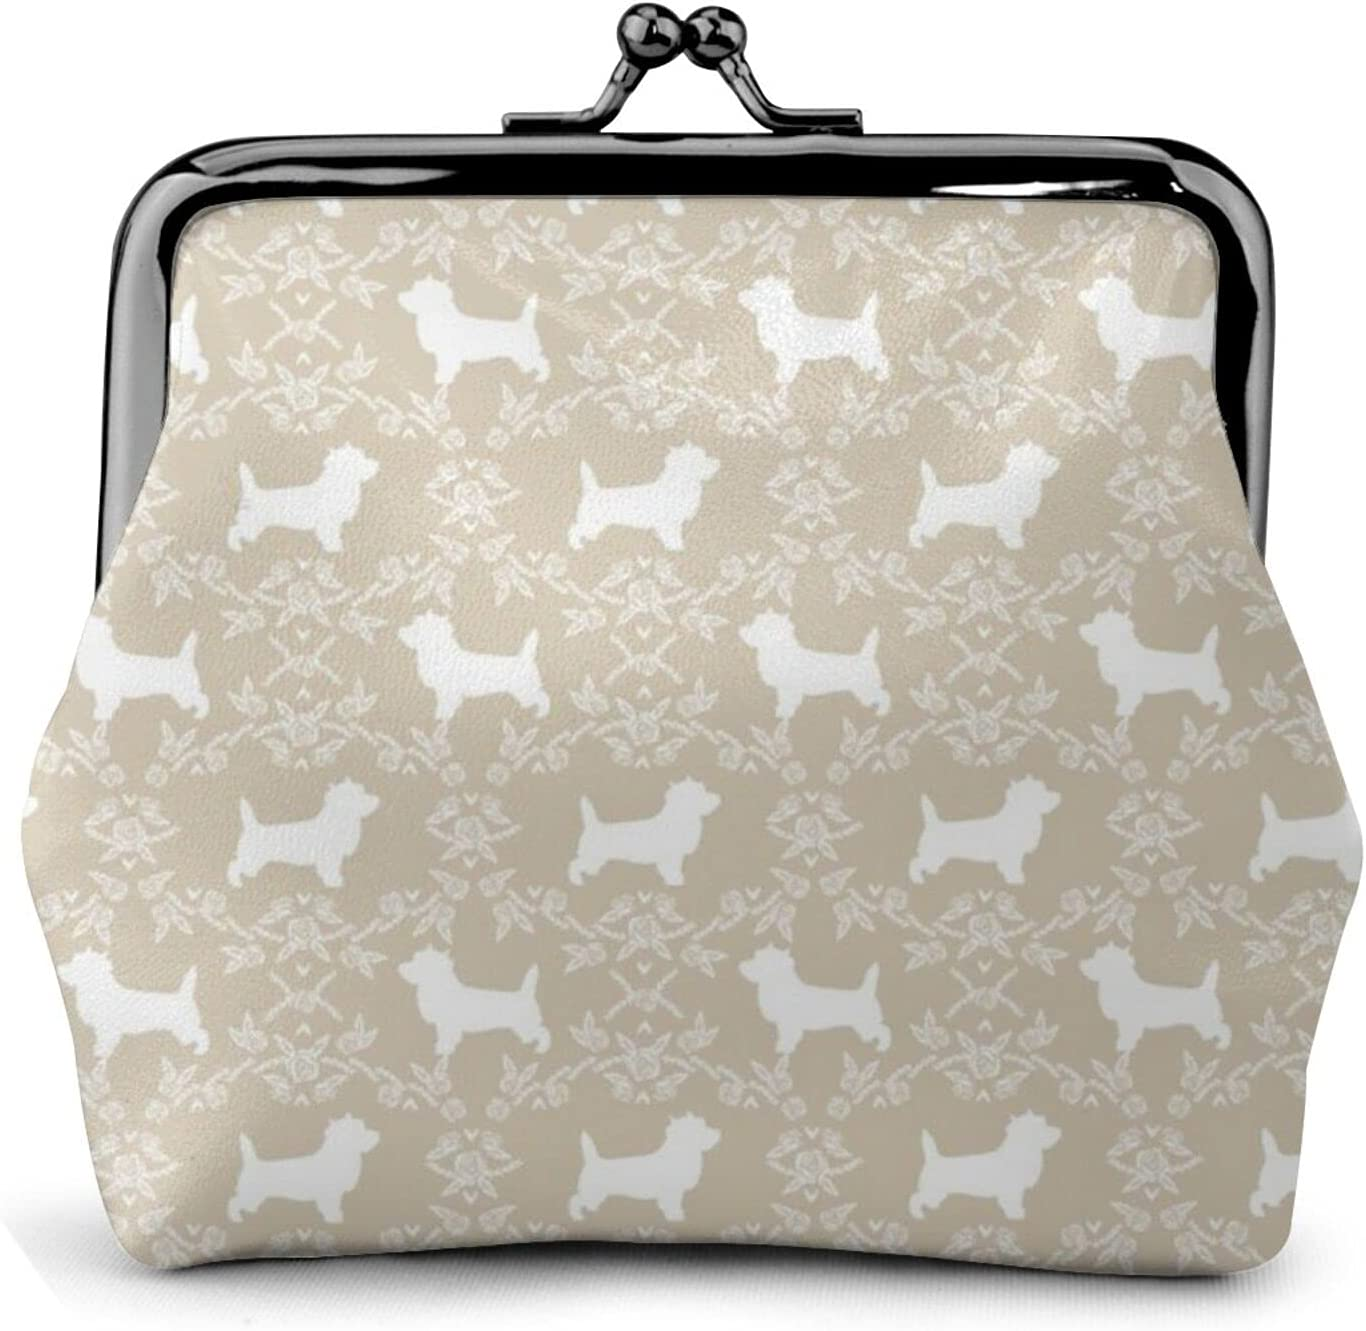 Cairn Terrier Florals 1367 Coin Purse Retro Money Pouch with Kiss-lock Buckle Small Wallet for Women and Girls